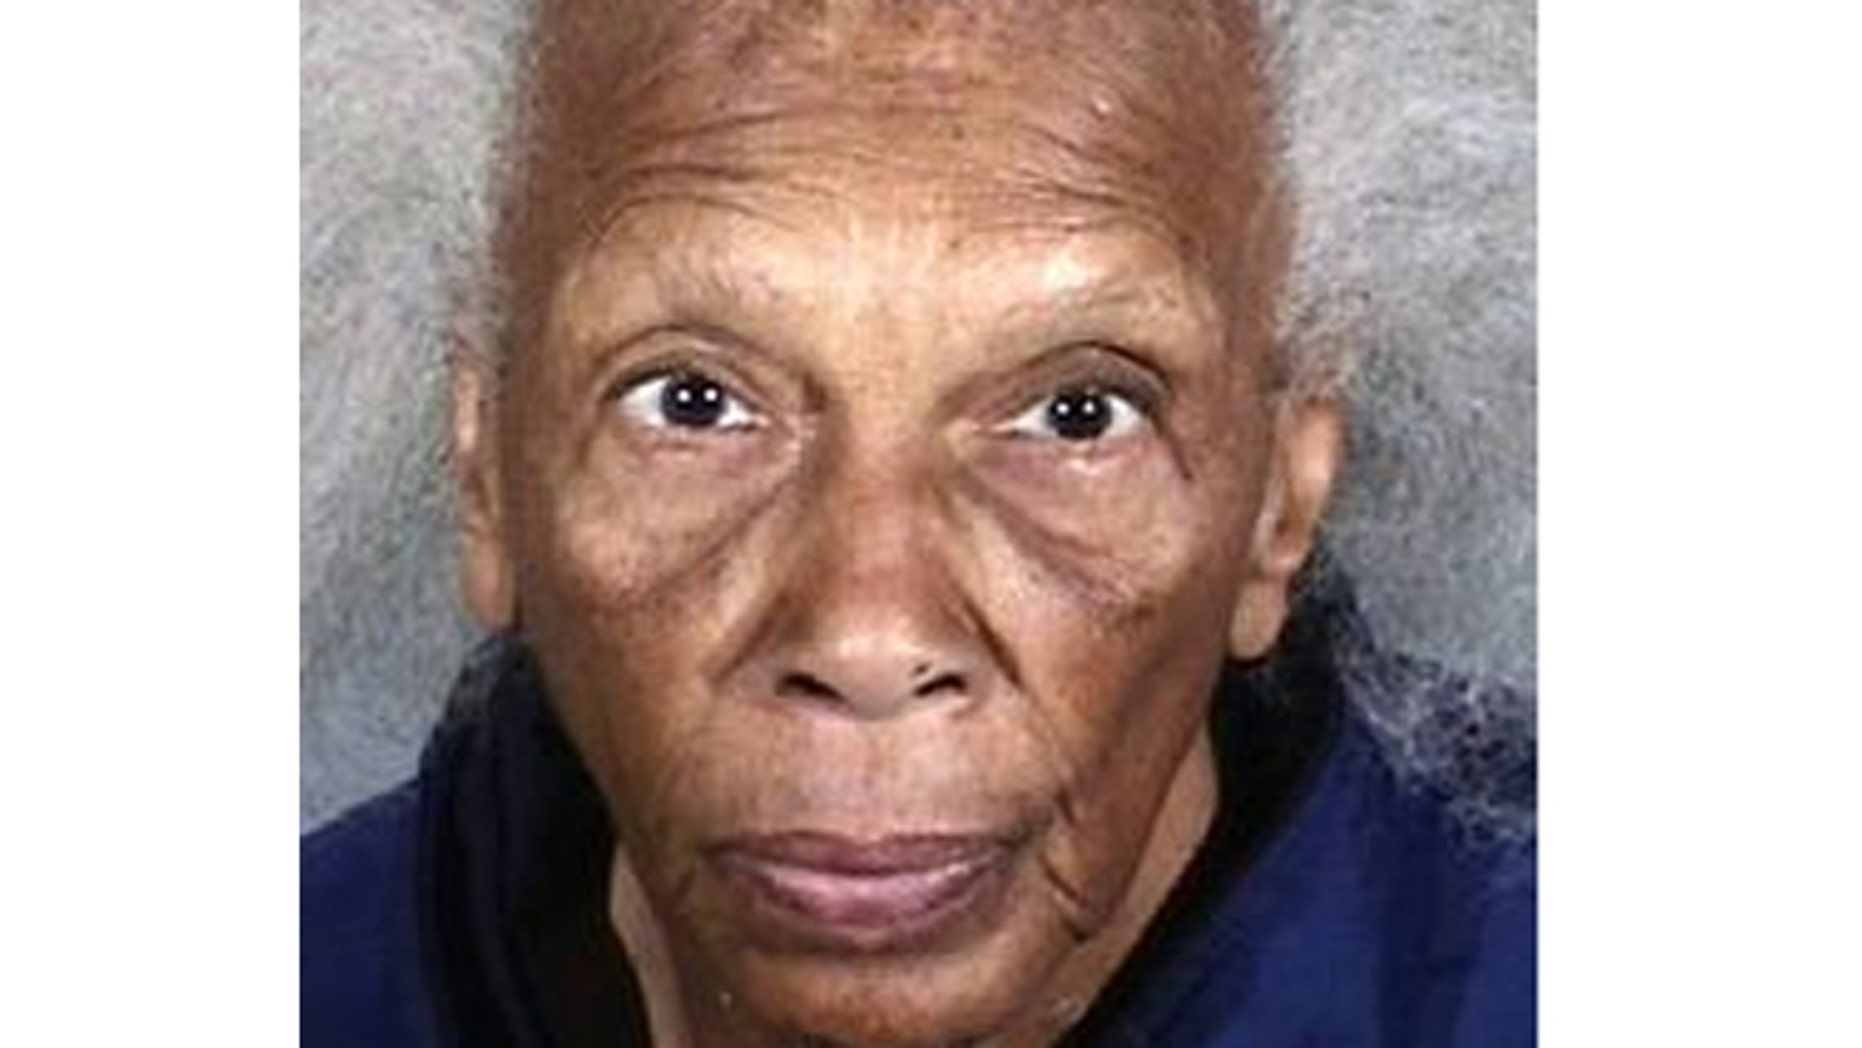 KTLA reports that police are submitting evidence in eight burglaries to bring possible charges against 82-year-old Doris Thompson, who is currently being held on $80,000 bail.